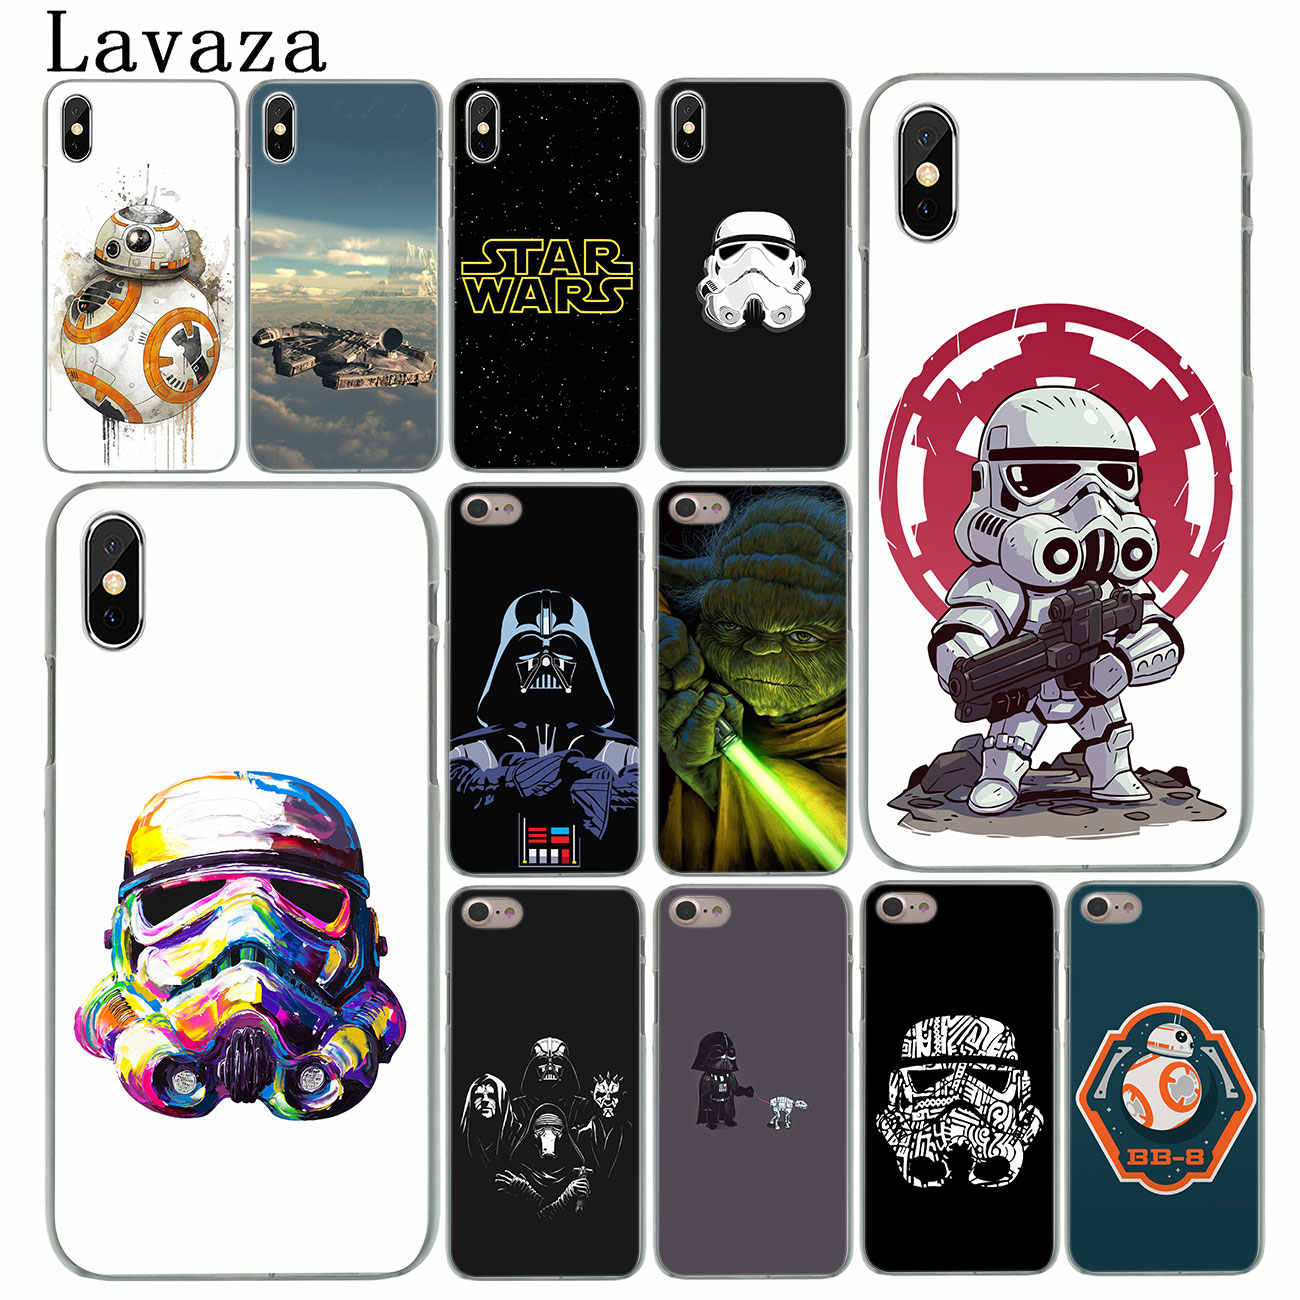 Lavaza Star Wars logo Hard Cover Case for iPhone X XS Max XR 6 6S 7 8 Plus 5 5S SE 5C 4S 10 Phone Cases 7Plus 8Plus